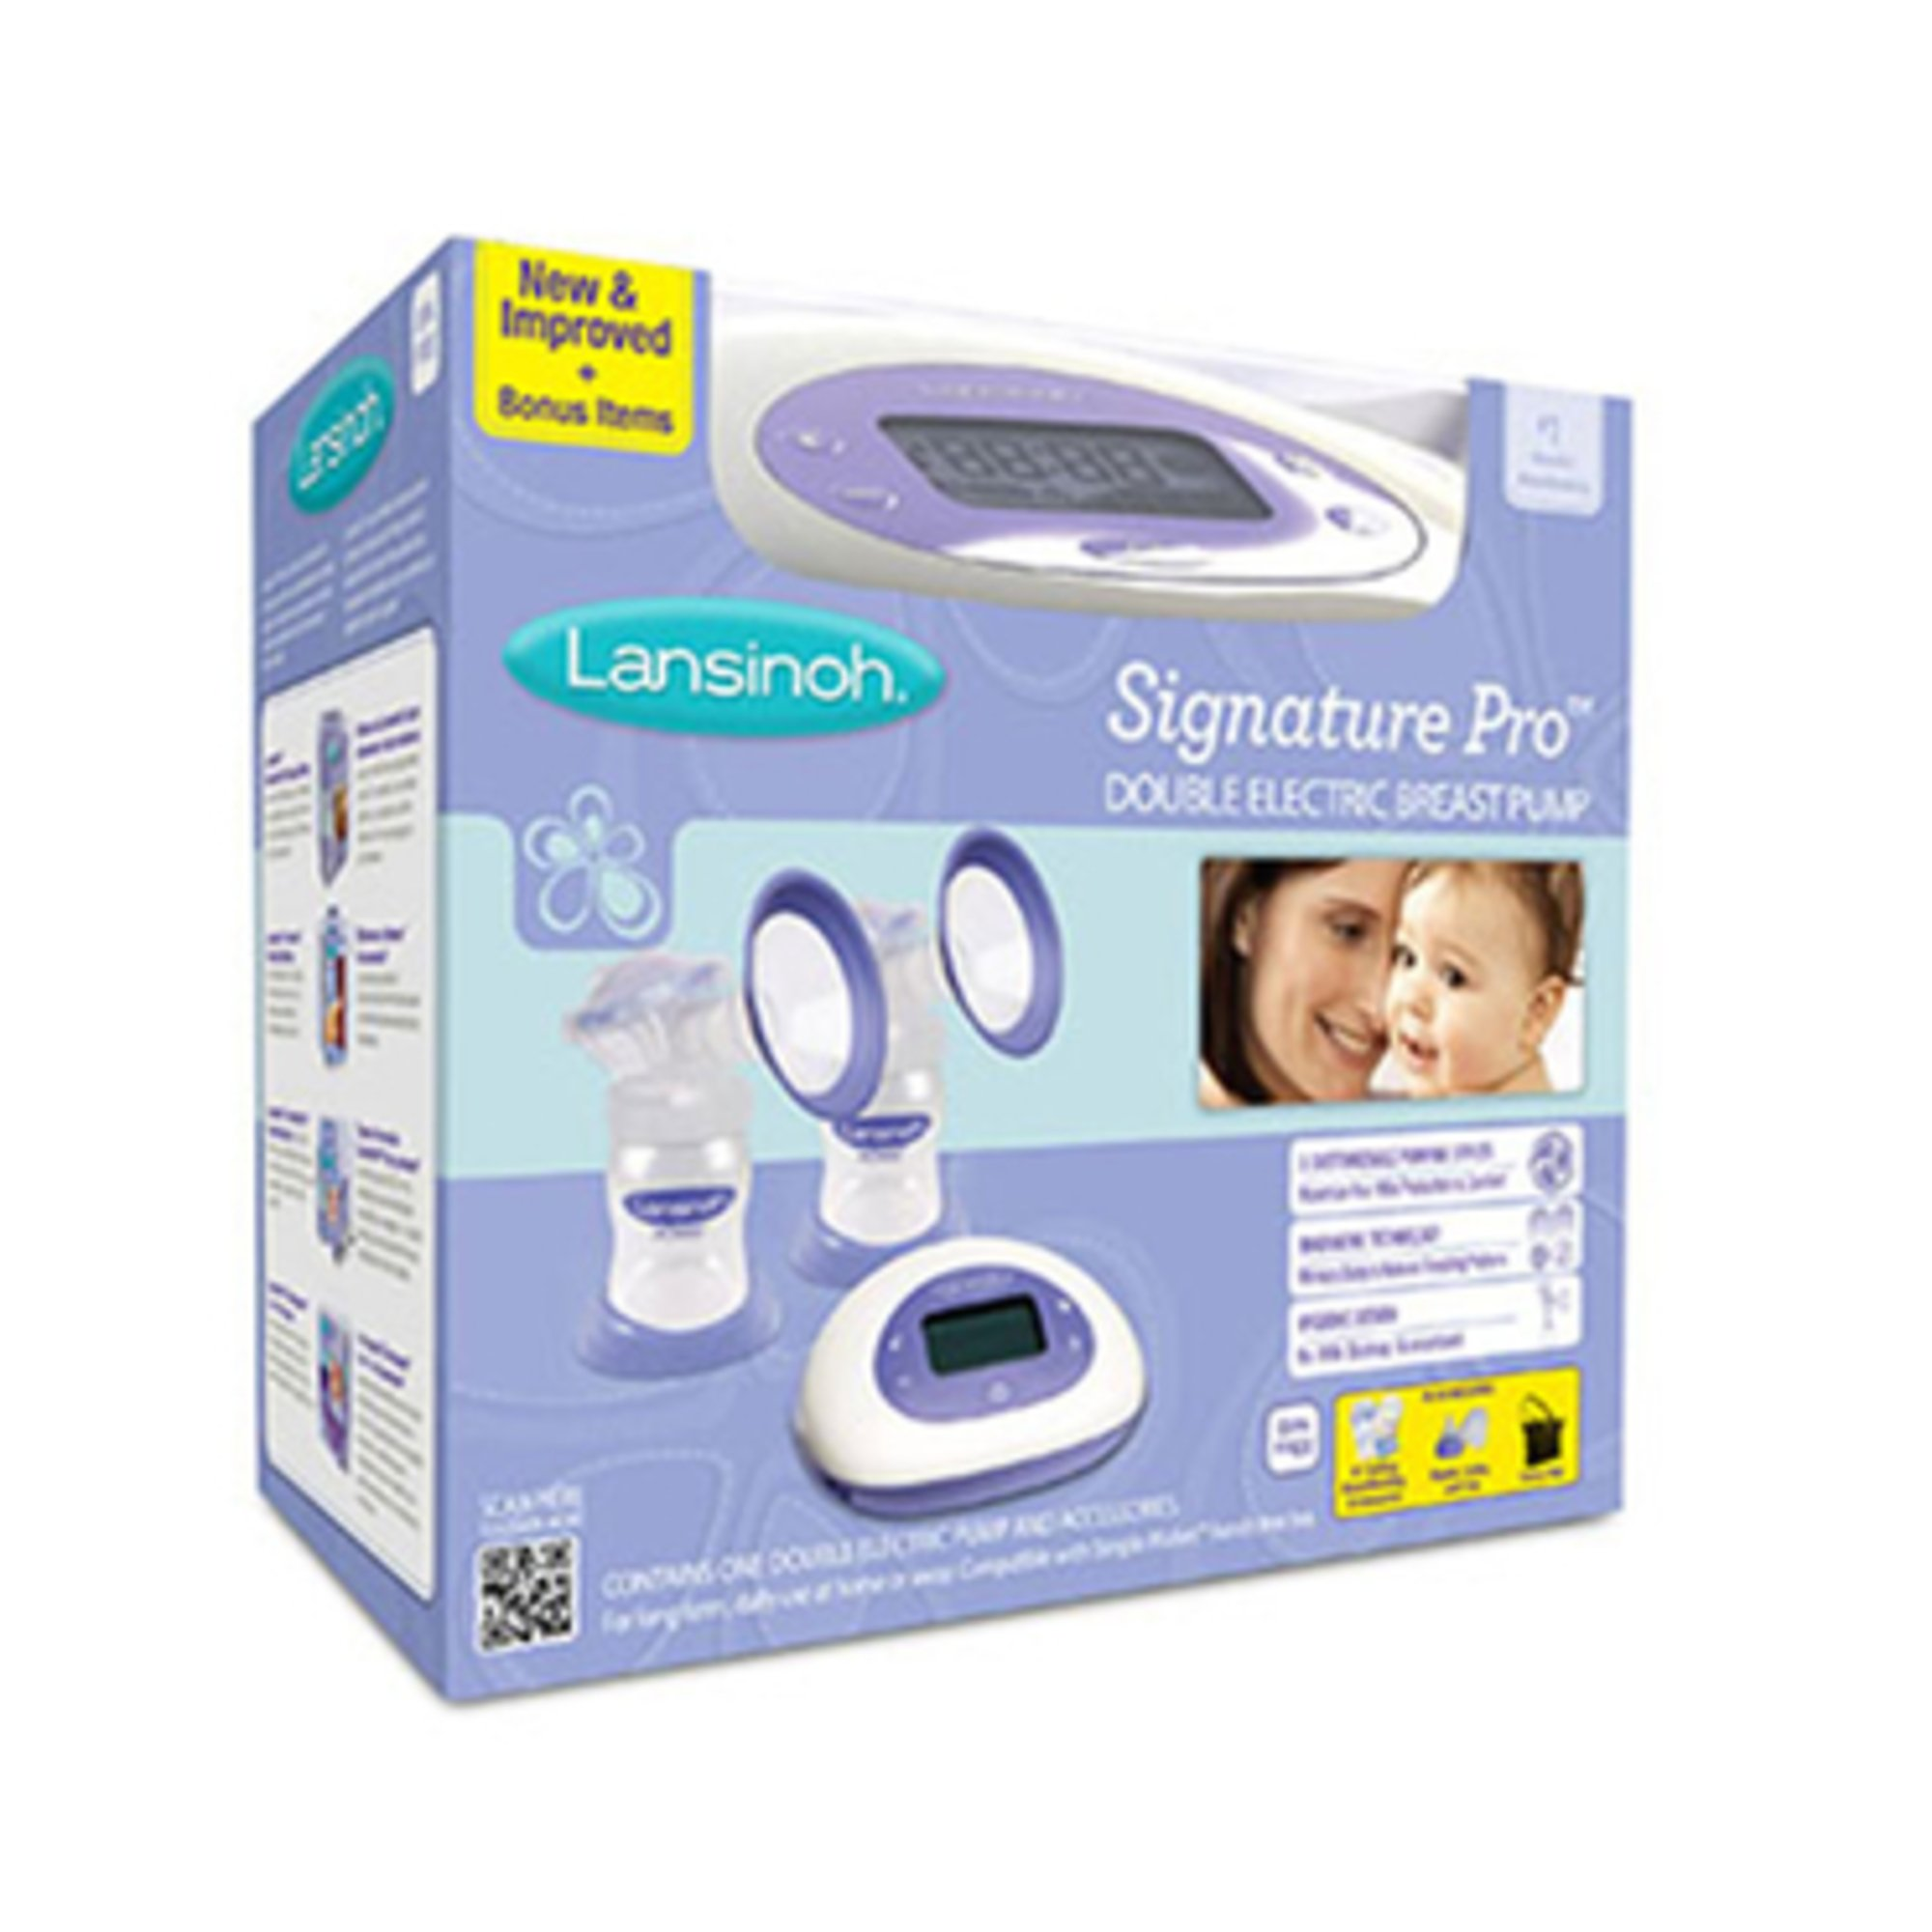 Lansinoh Signature Pro Double Electric Breast Pump D Breast